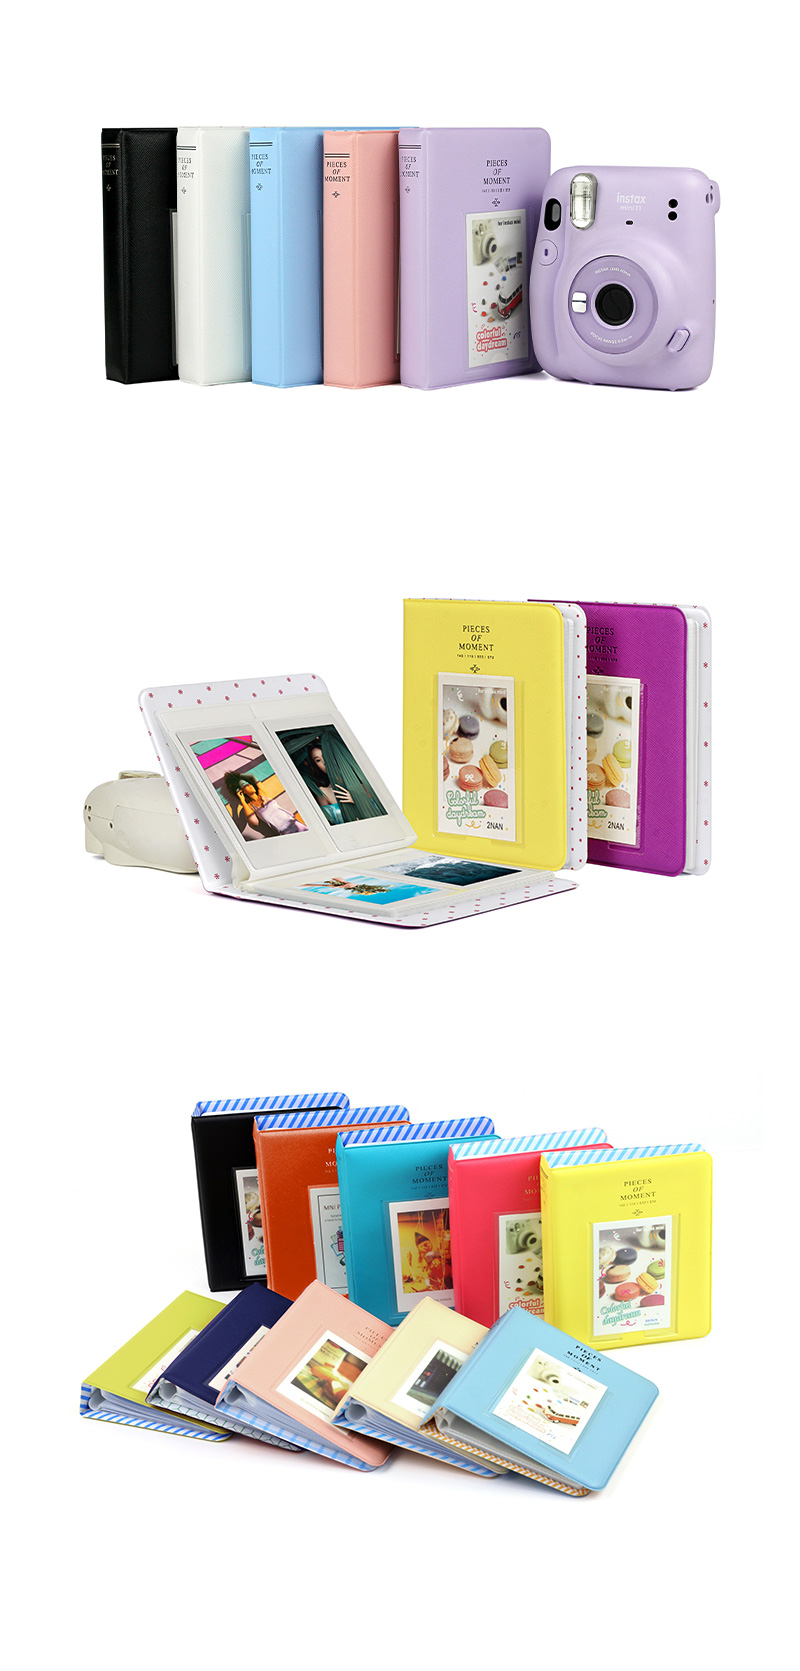 65 Pockets Mini Photo Album for Fujifilm Instax Mini 7s / 8 / 9 / 11 / 25 / 90 / Link / SP-2 / Liplay / Film